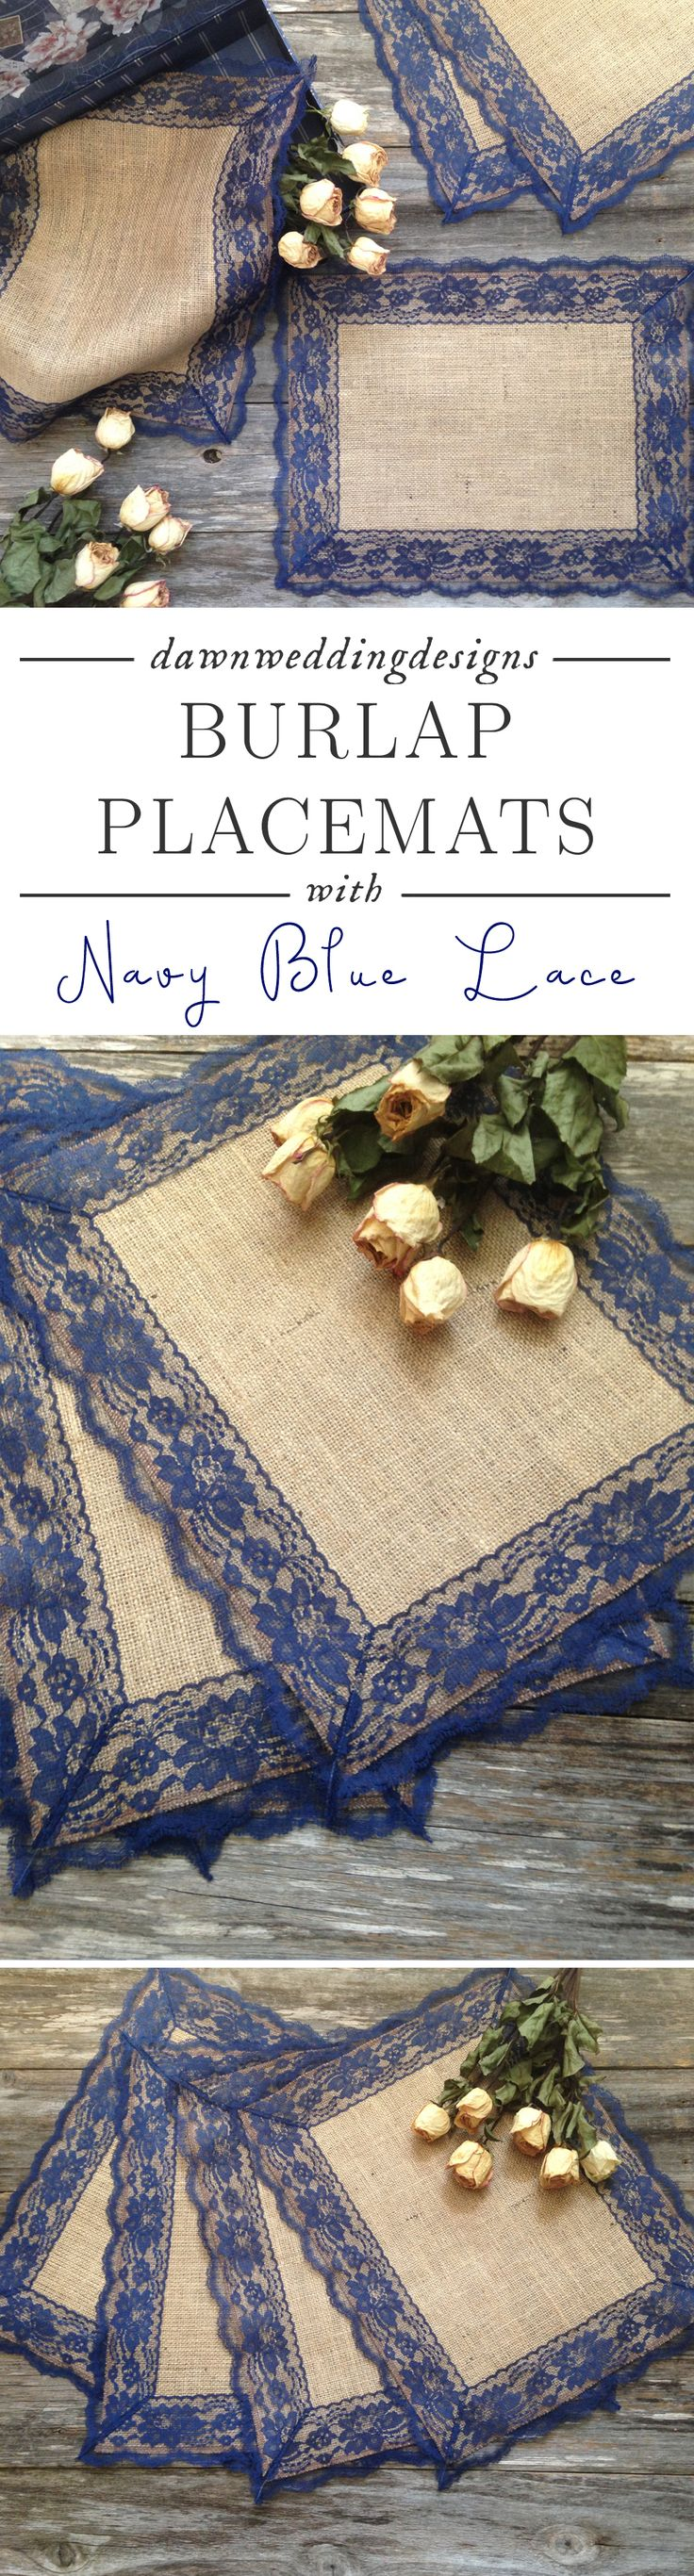 Rustic Navy Blue Wedding Décor - Rustic Placemats - Burlap and NAVY / DARK BLUE Lace, Wedding Placemat, Rustic Country Wedding, Country Home Decor, French Country Cottage